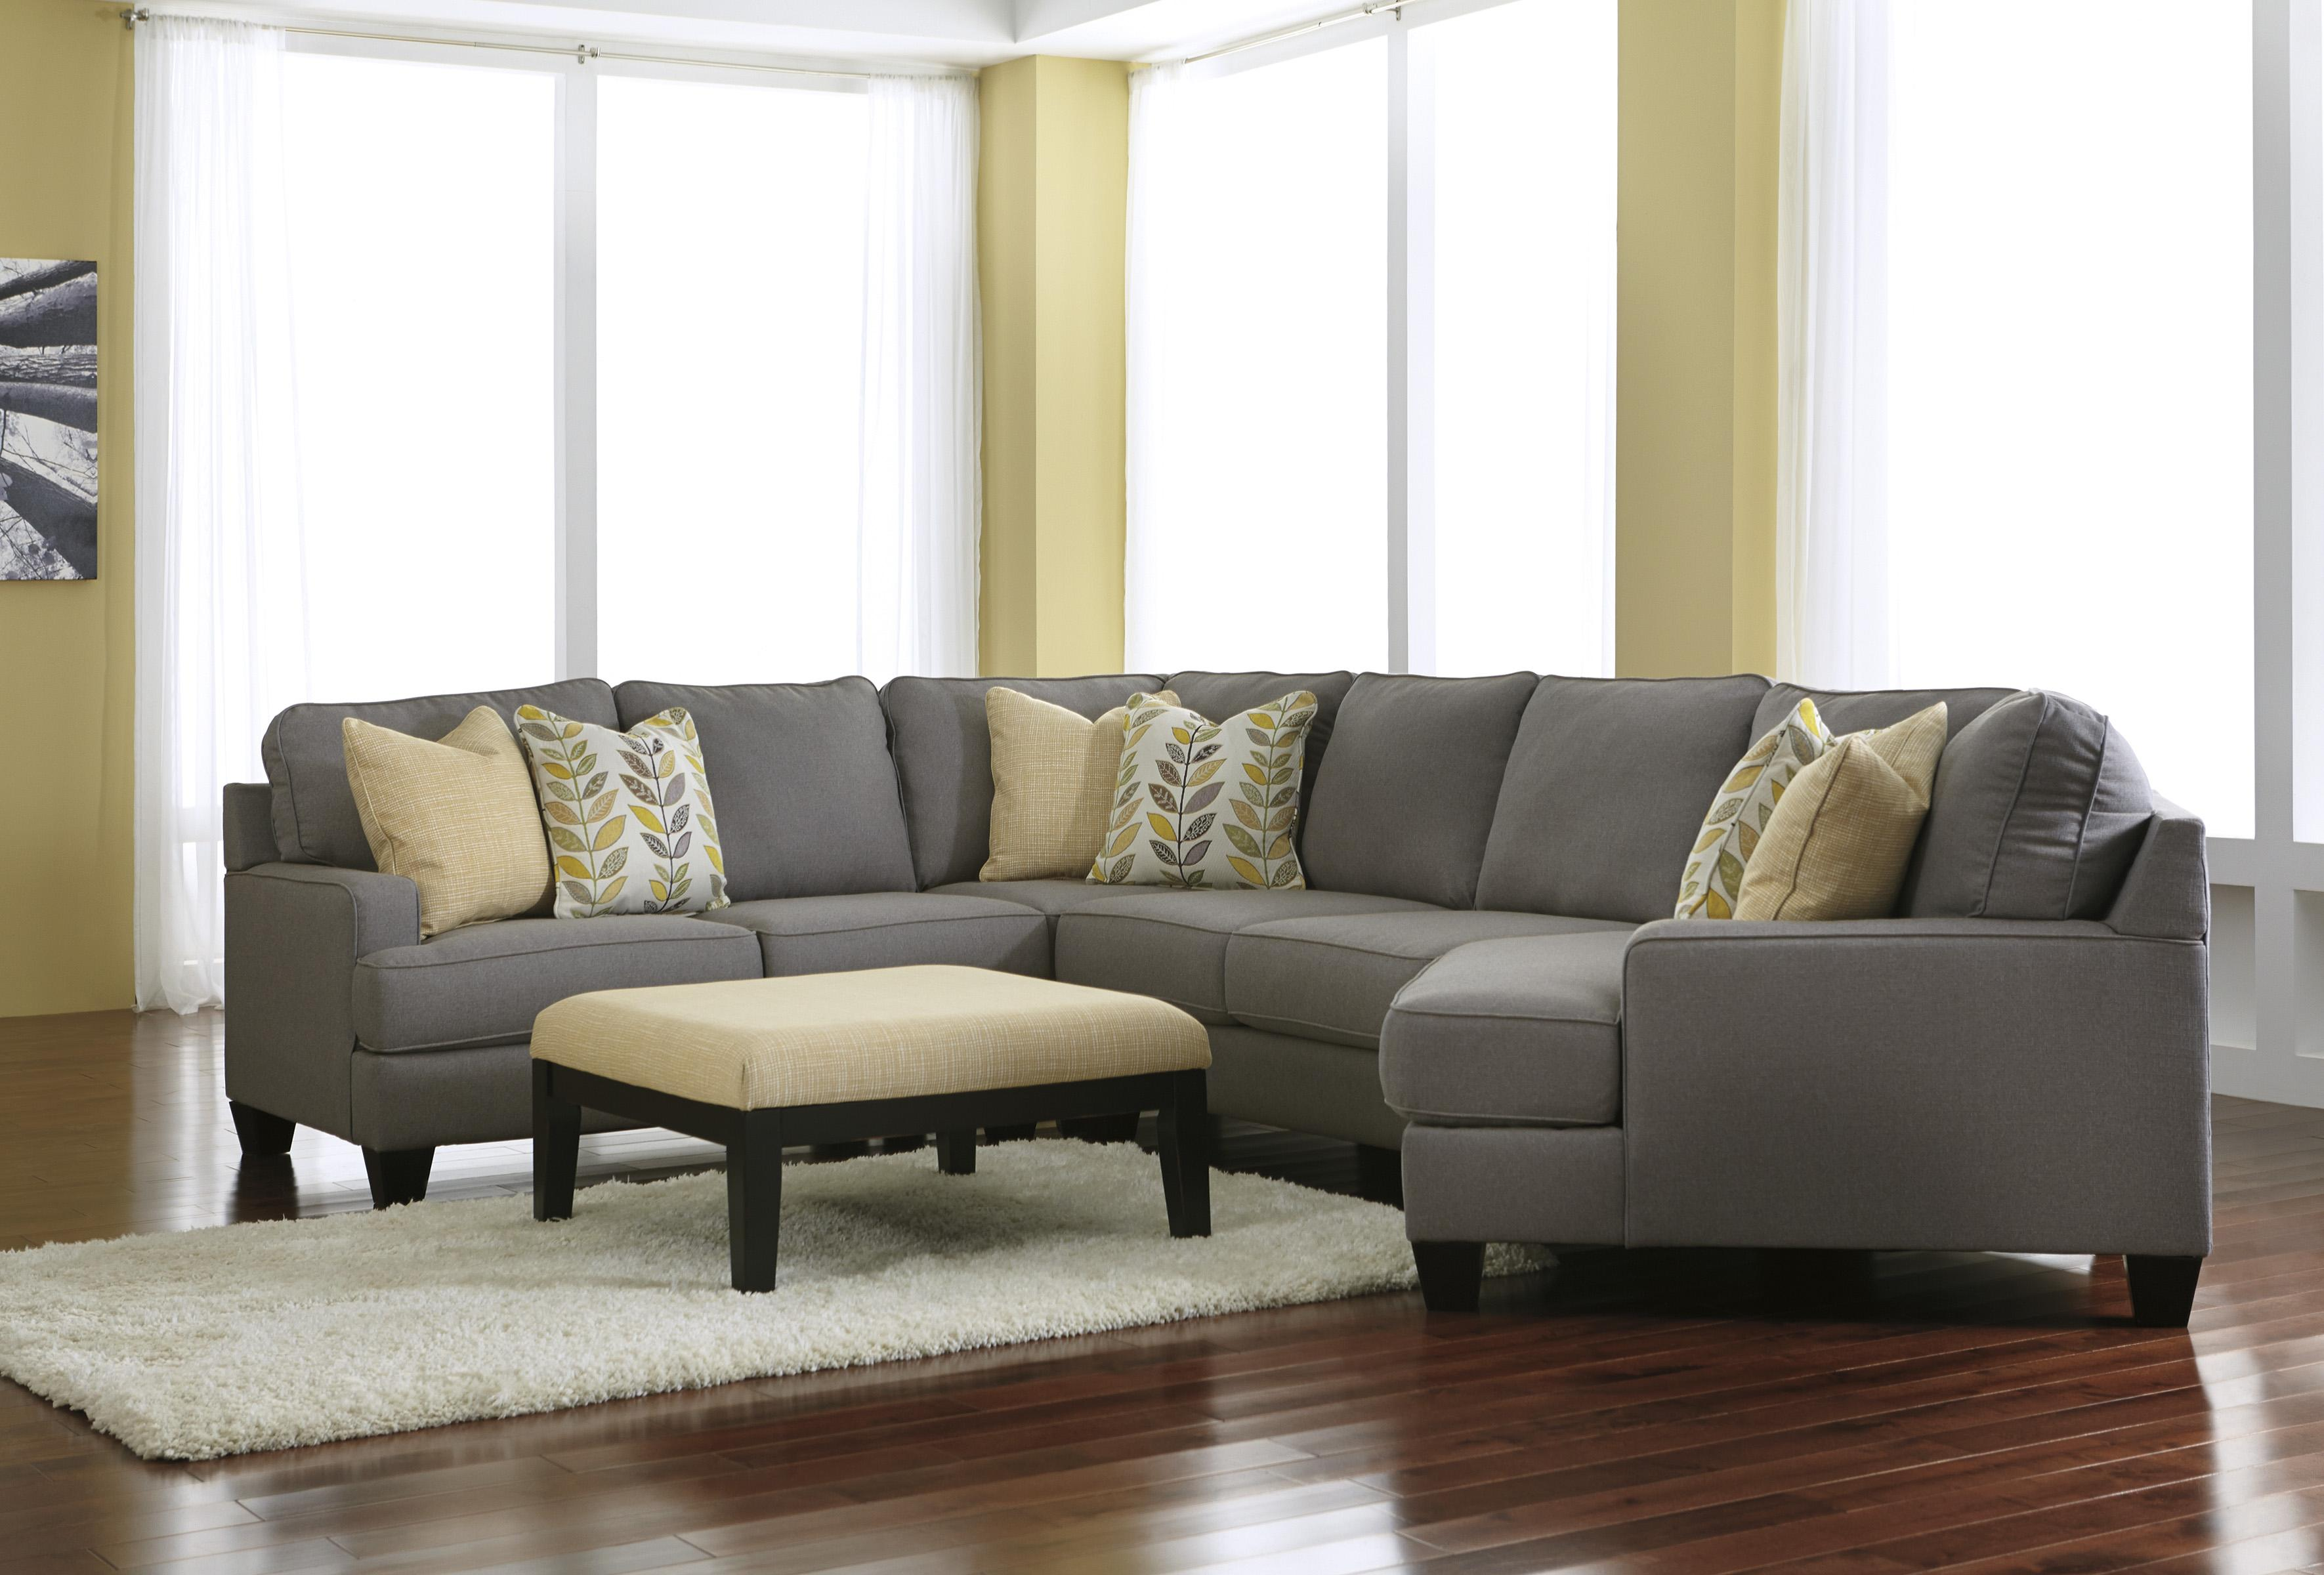 Signature Design by Ashley Chamberly - Alloy Stationary Living Room Group - Item Number: 24302 Living Room Group 13